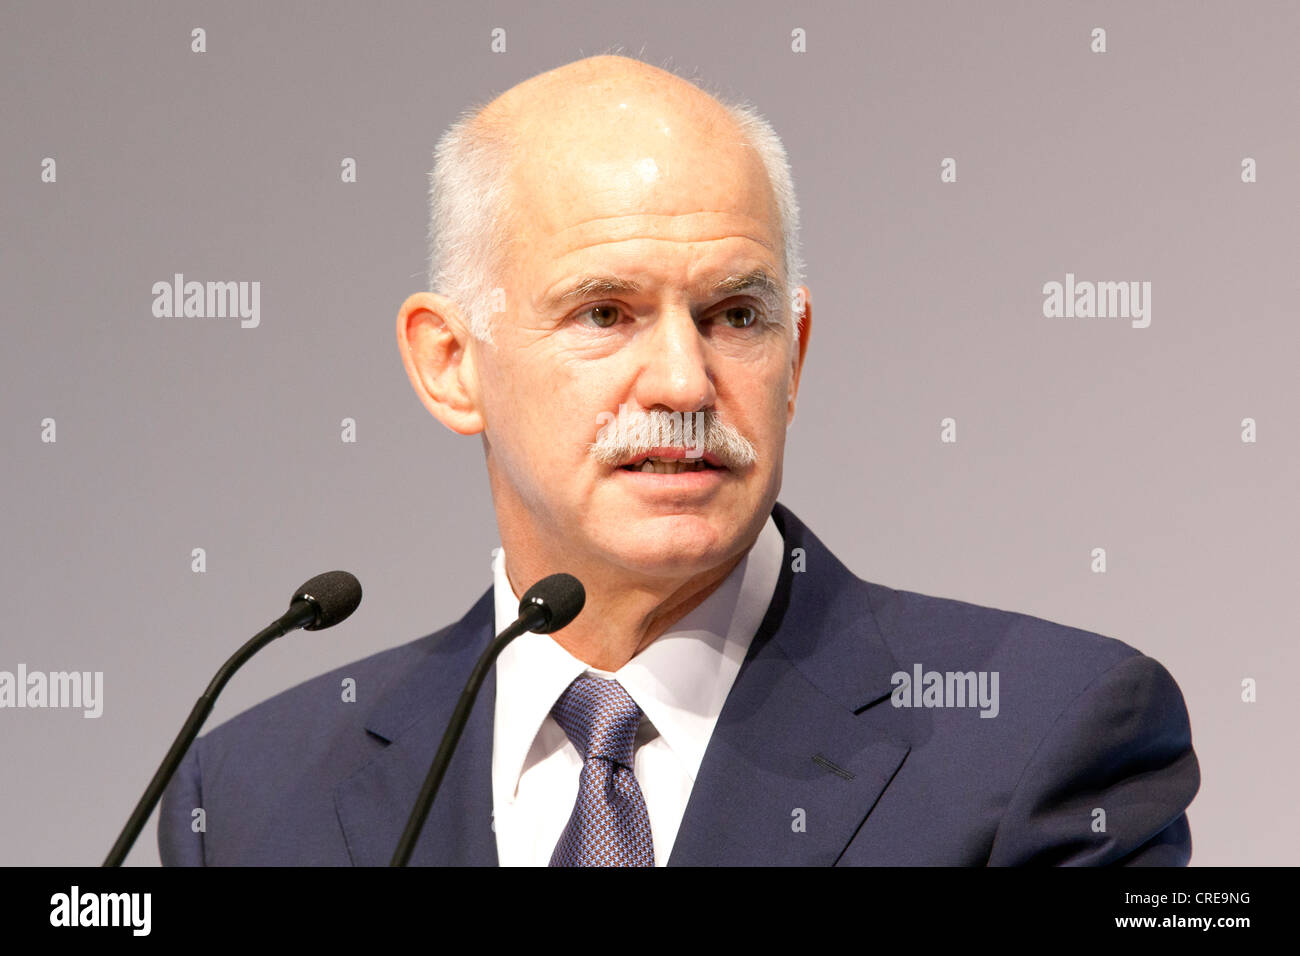 Giorgos Andrea Papandreou, Prime Minister of Greece, BDI day of German Industry, 27 September 2011 in Berlin, Germany, - Stock Image